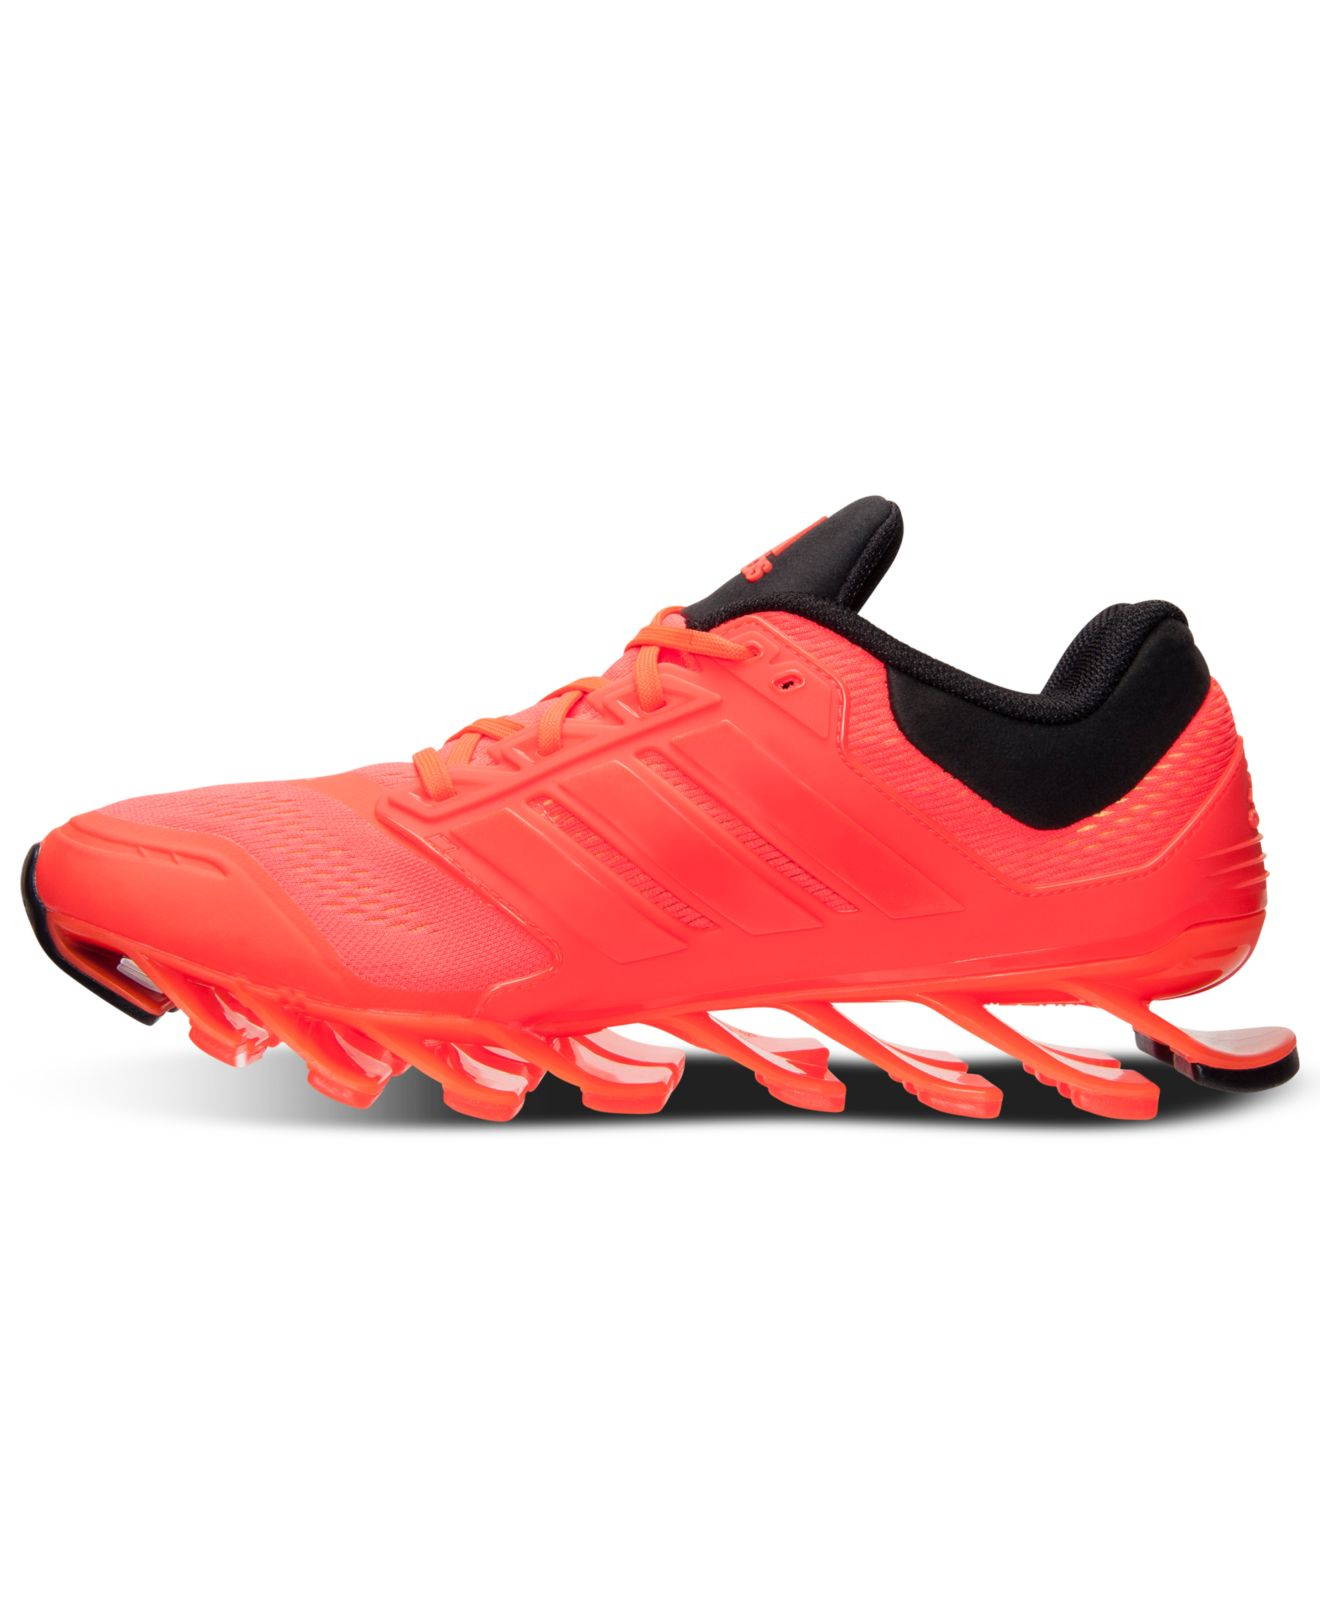 adidas springblade drive 2.0 mens running shoes nz